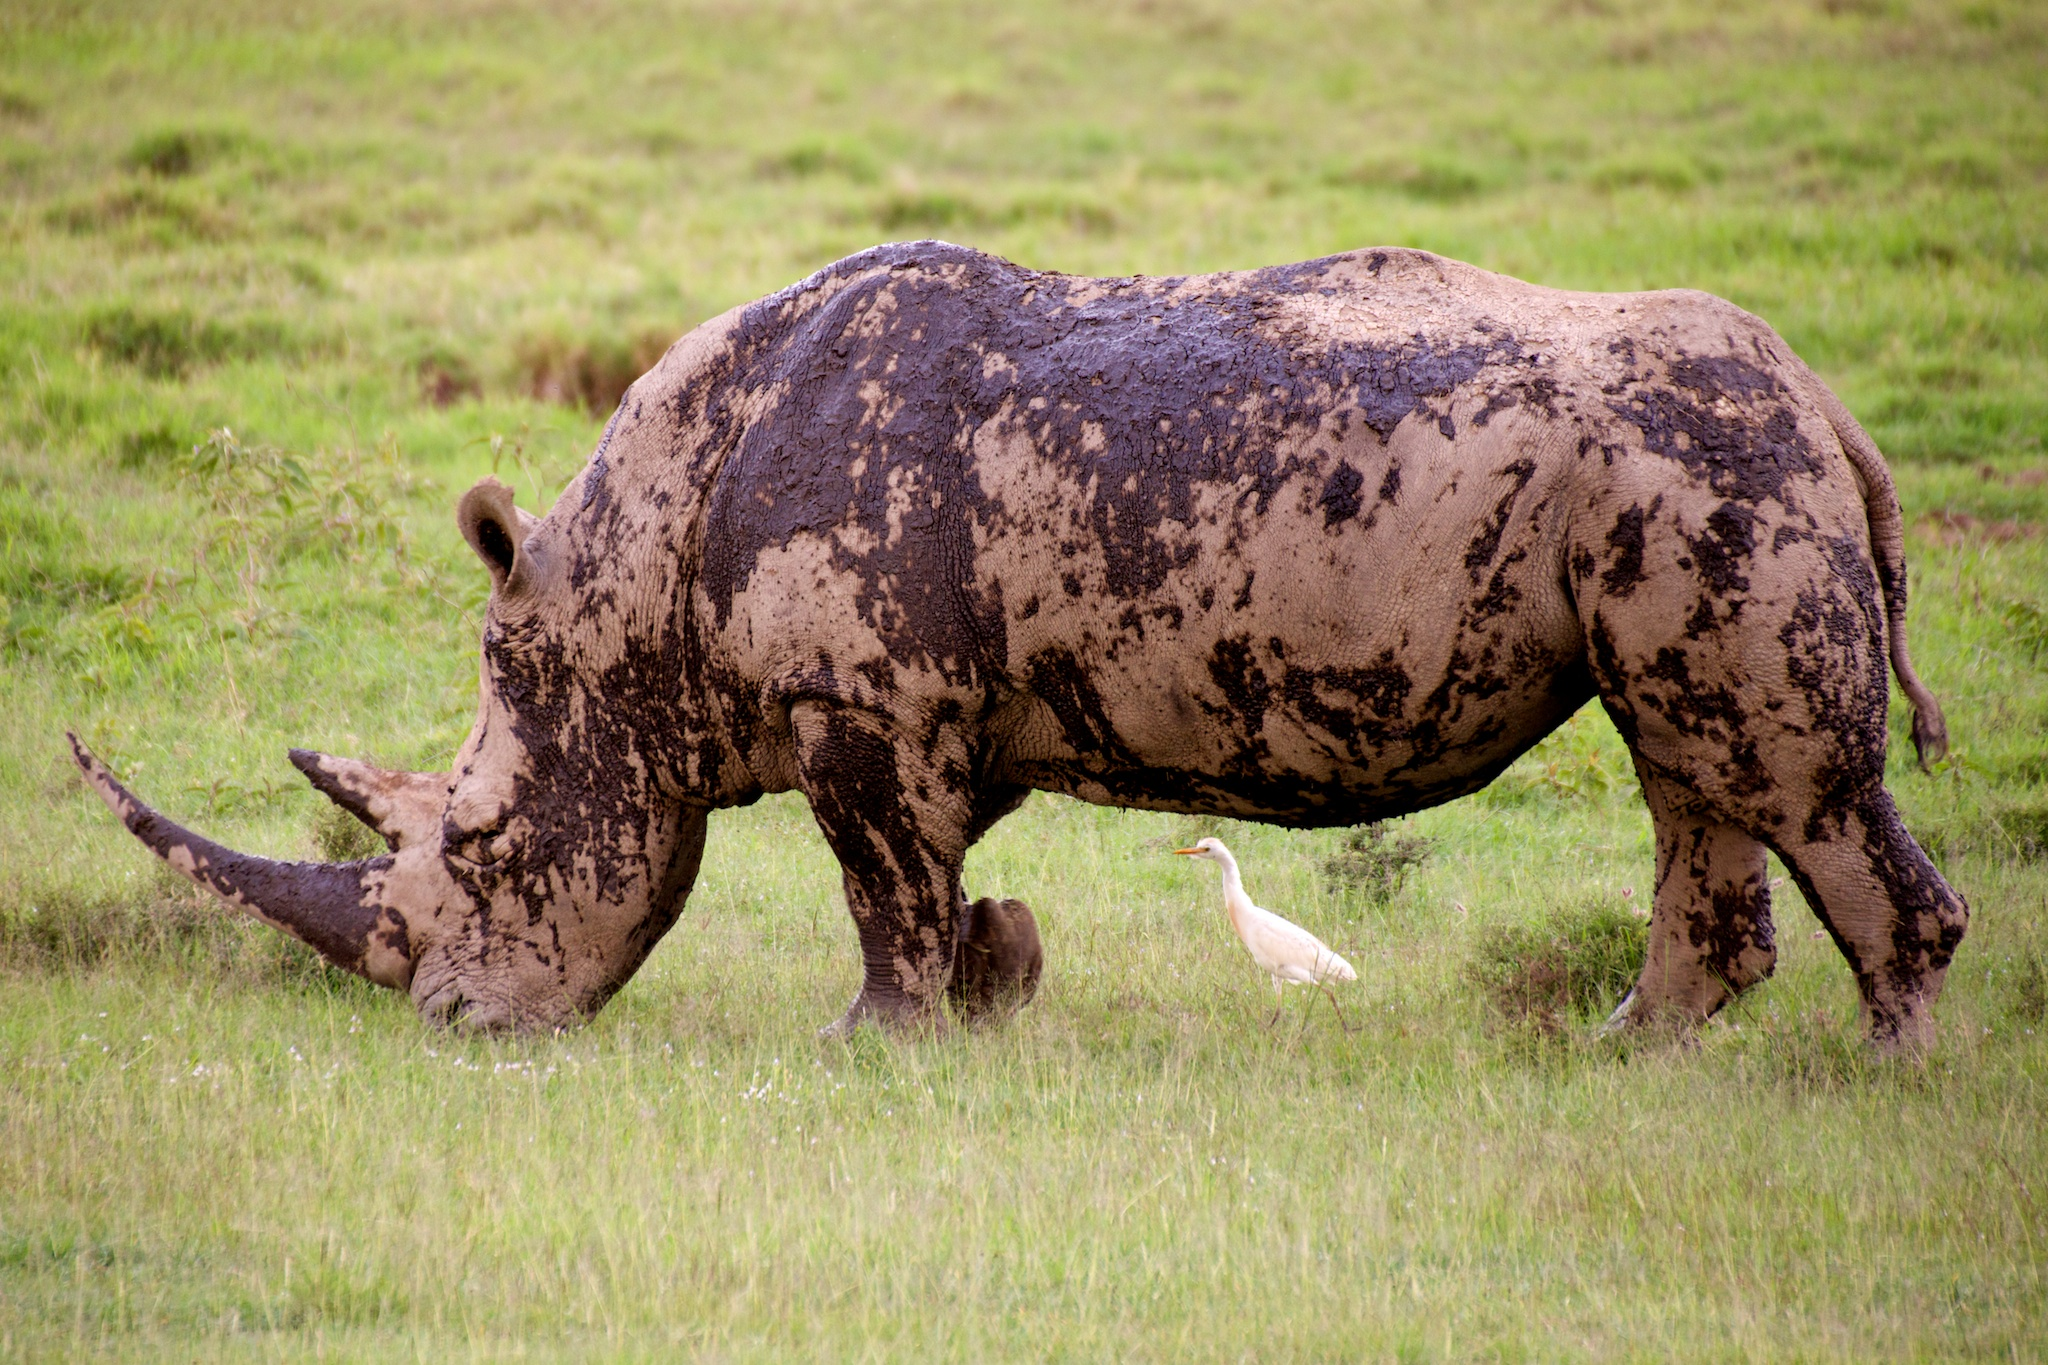 #2: Rhino (and friend)